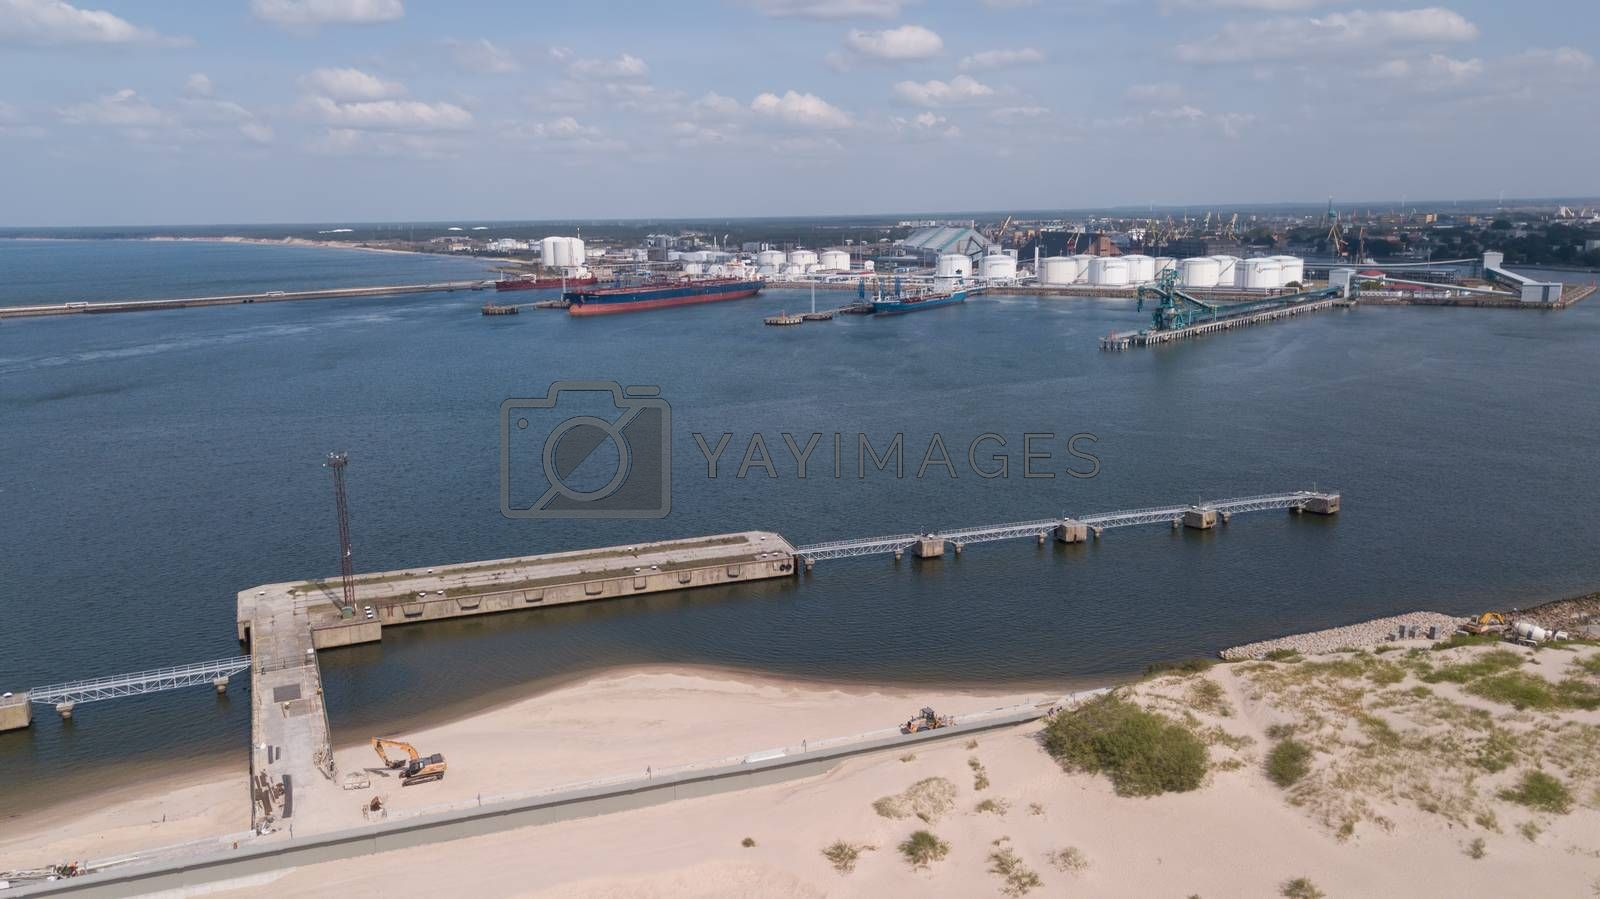 Harbor Ventspils Latvia Aerial view of countryside drone top view by desant7474